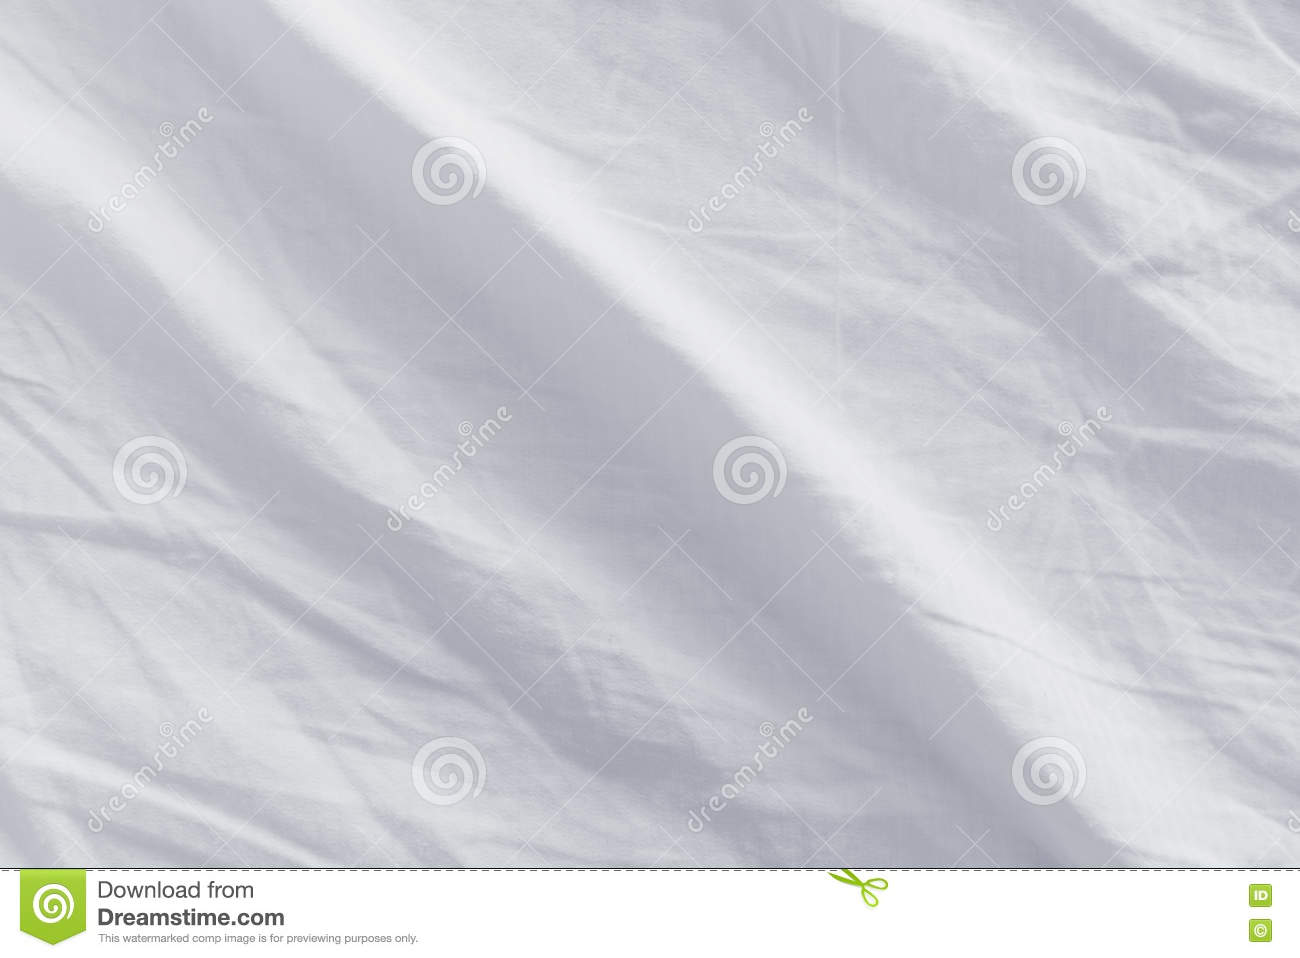 White bed sheets texture - Crumpled Bed Sheets Texture